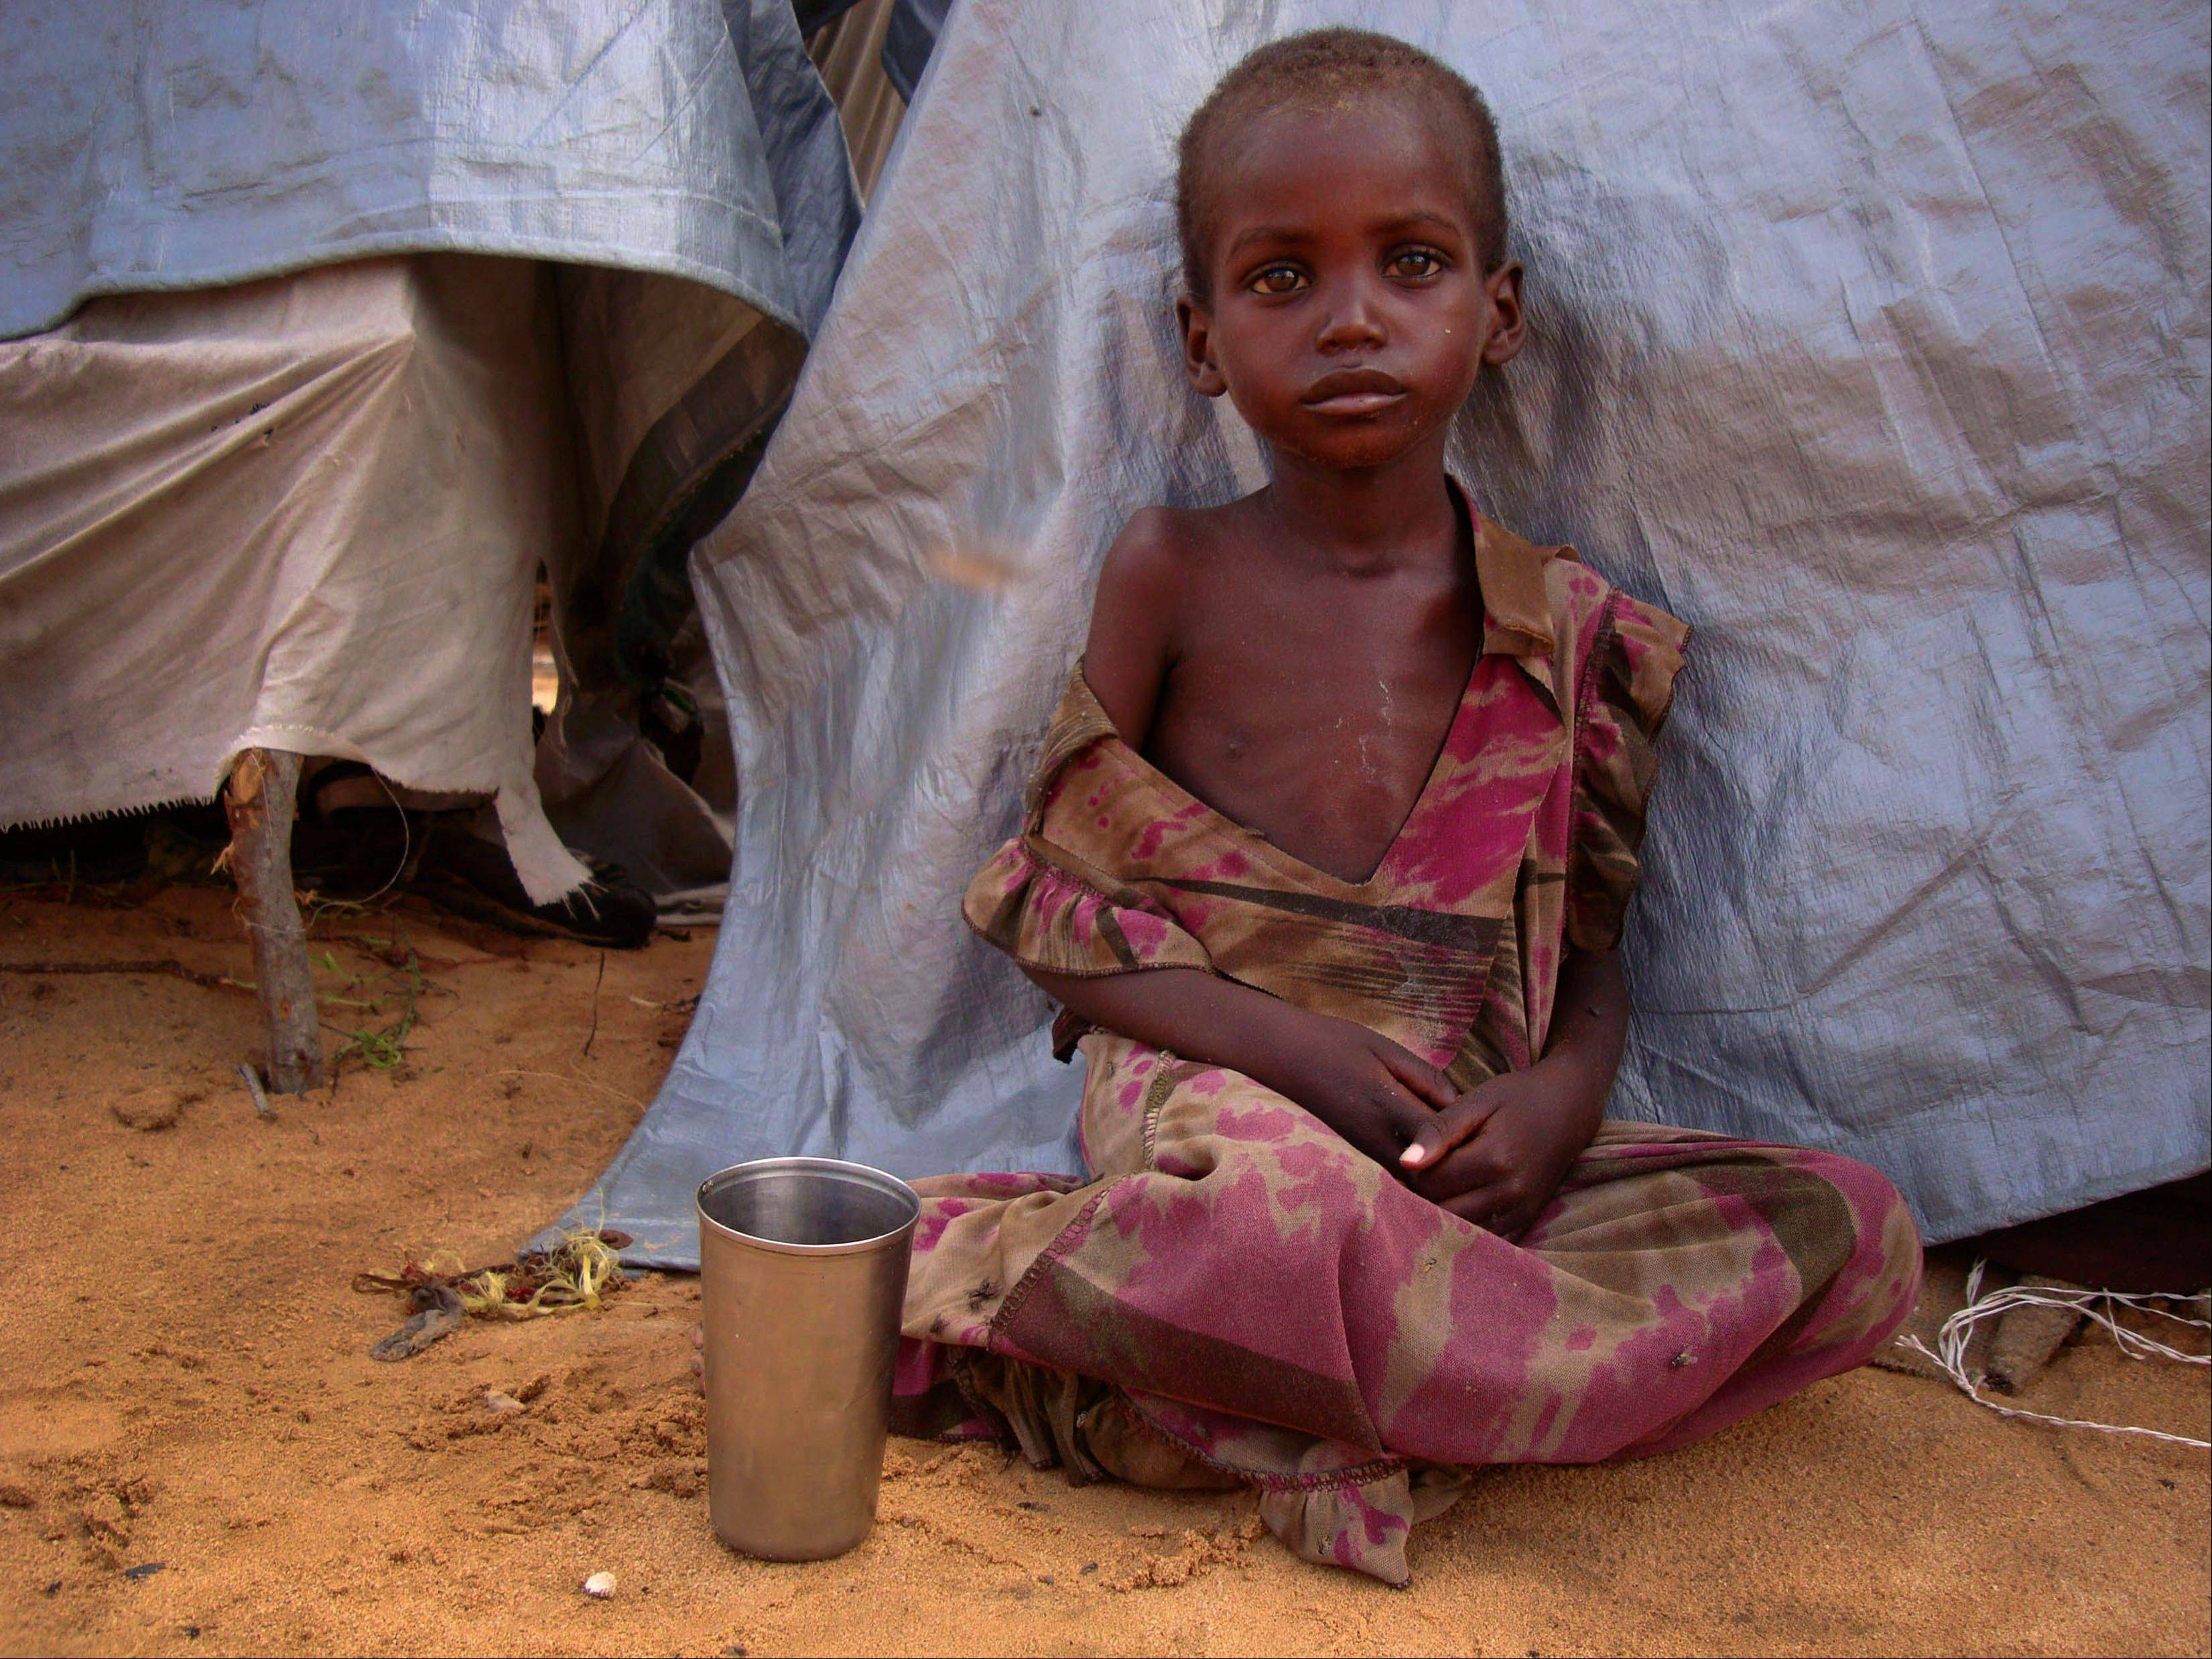 A girl from southern Somalia sits outside a makeshift shelter at a refugee camp in Mogadishu, Somalia, Tuesday, Aug 9, 2011. The number of people fleeing famine-hit areas of Somalia is likely to rise dramatically and could overwhelm international aid efforts in the Horn of Africa, a U.N. aid official said Tuesday.